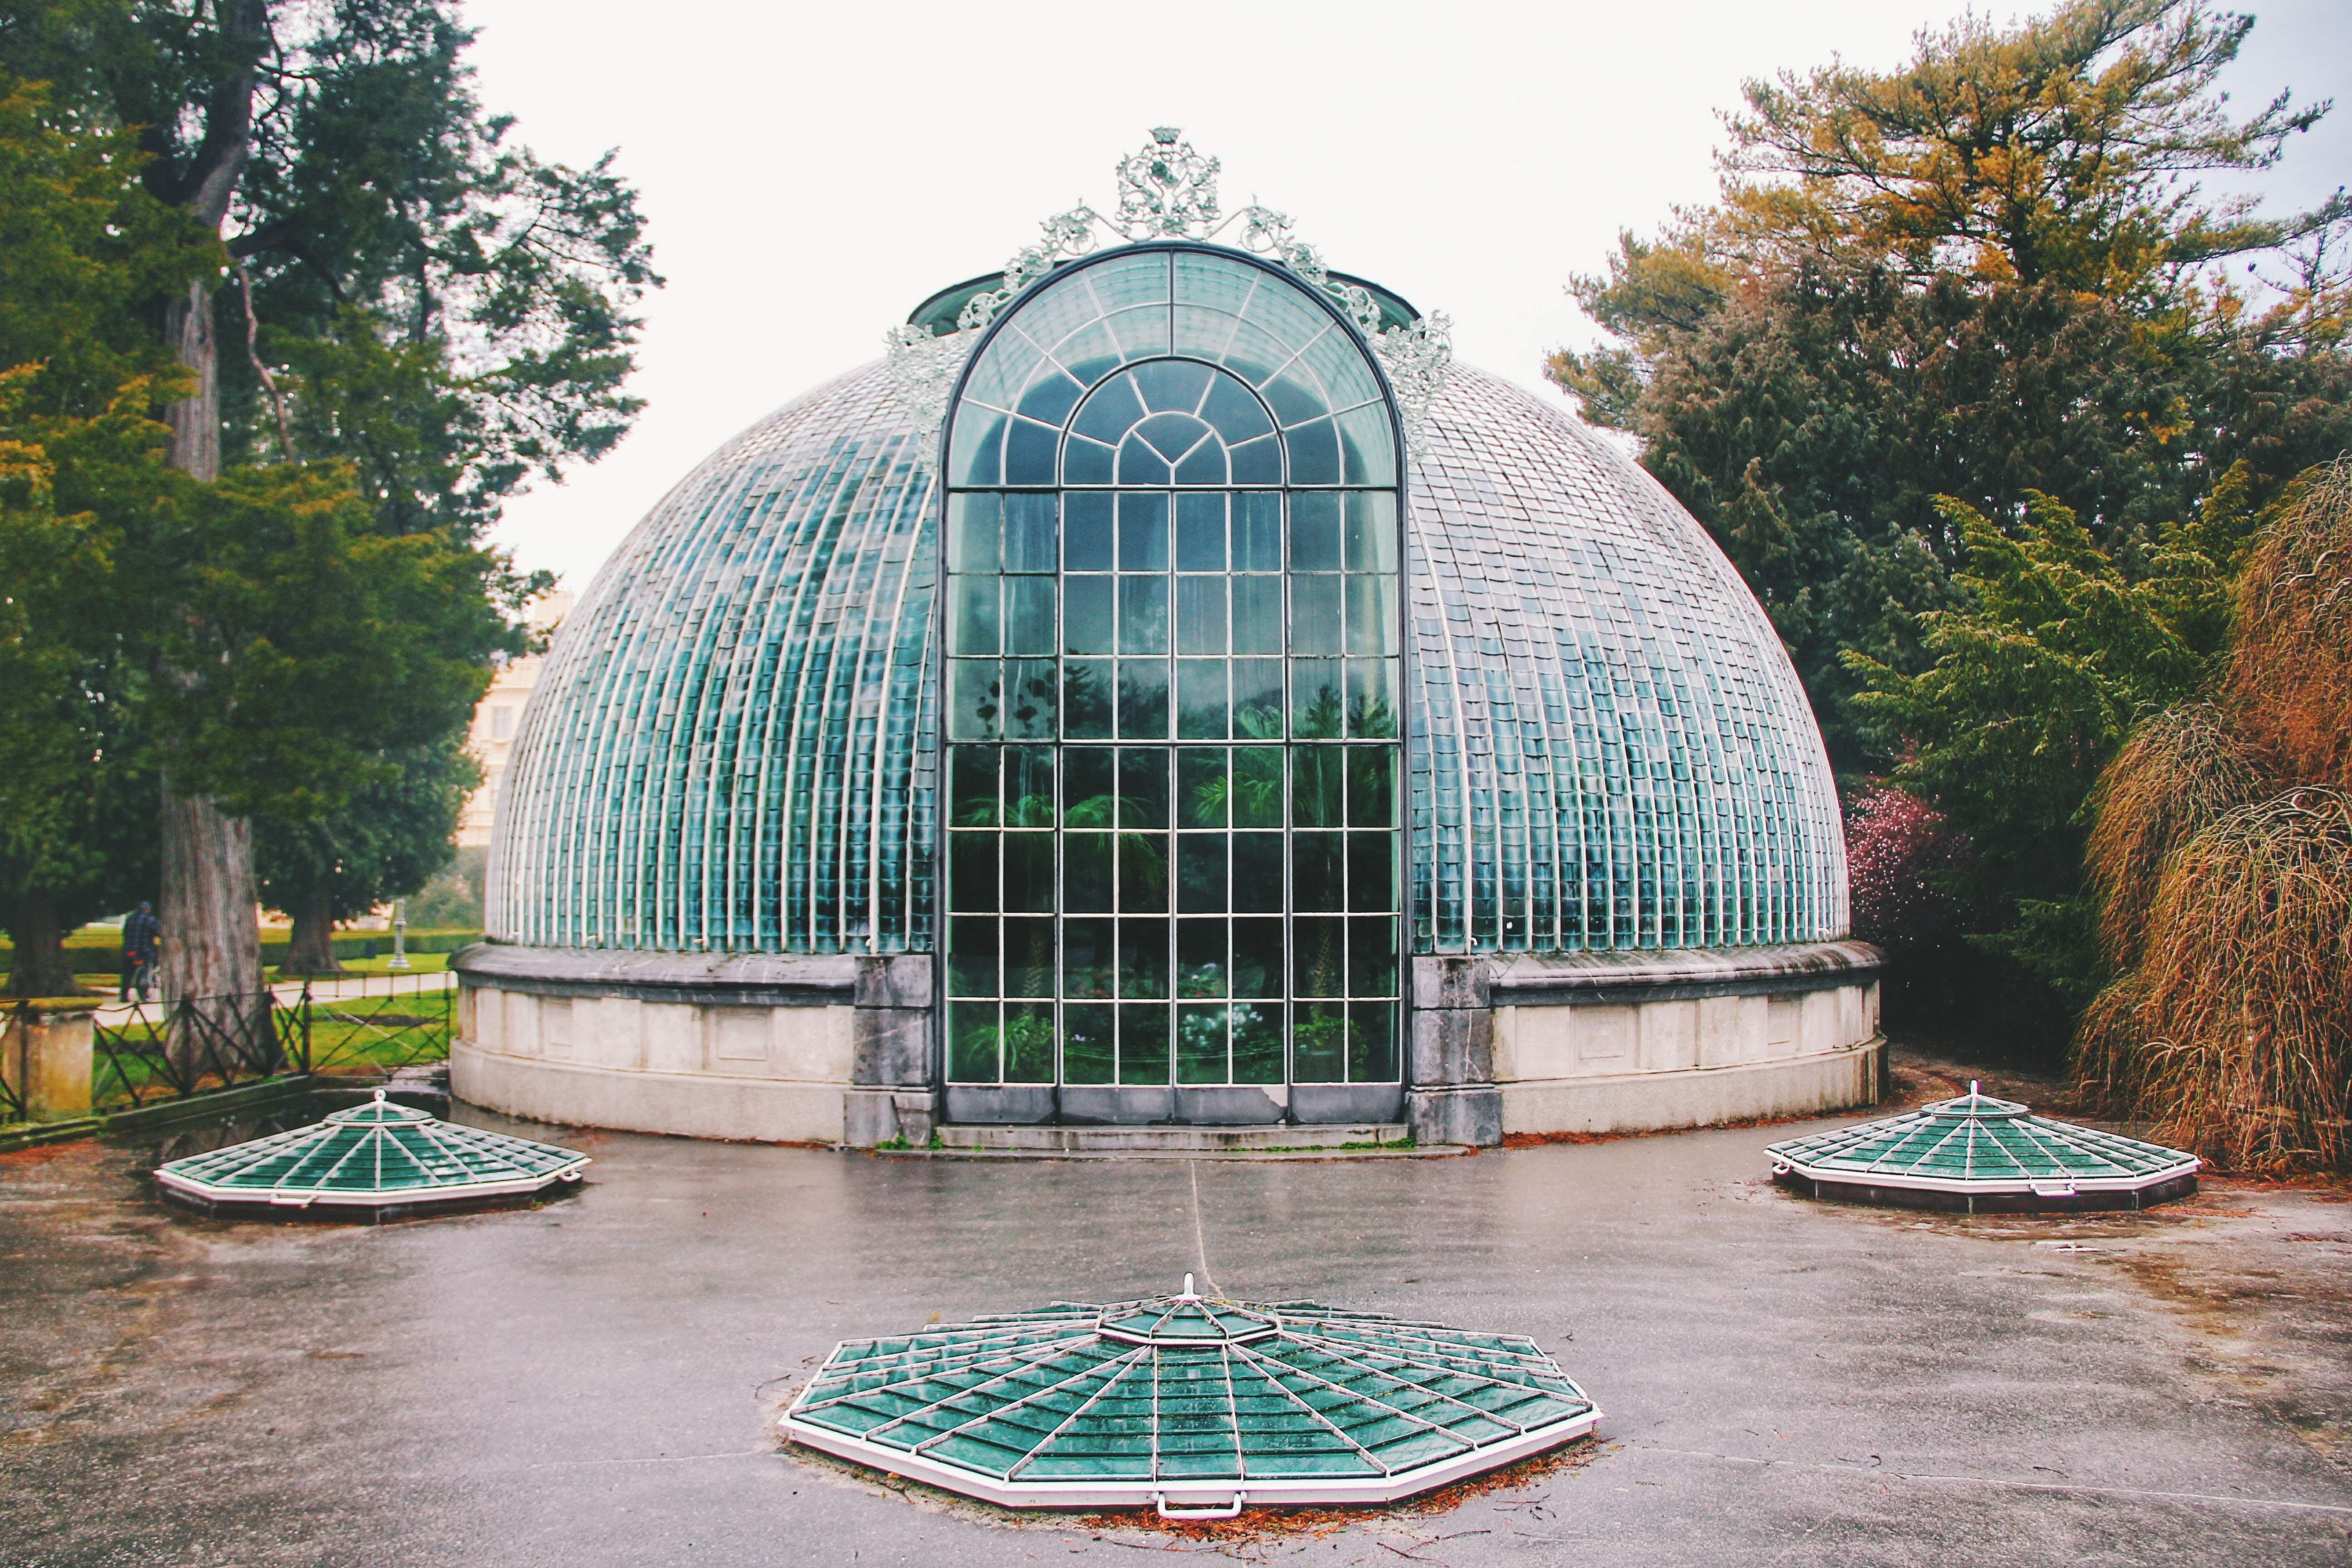 Photo of Clear Glass Building, Architectural design, Green house, Trees, Travel, HQ Photo